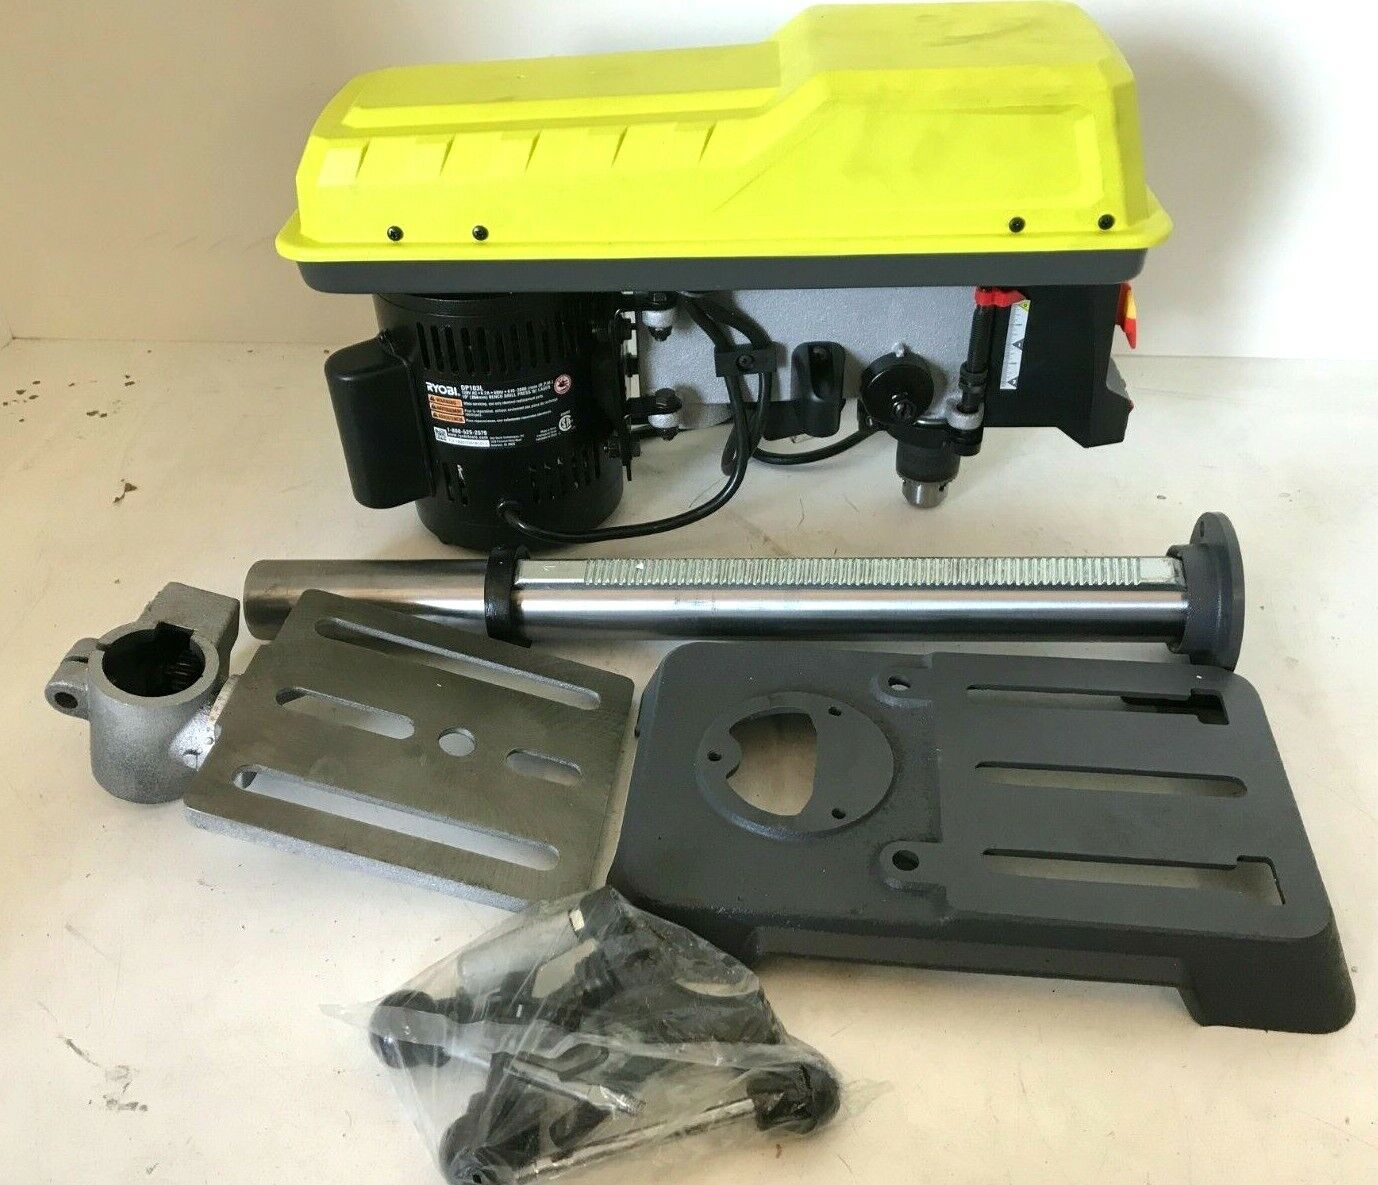 Other Drills & Hammers RYOBI Drill Press 10 in 1/4 HP Induction ...